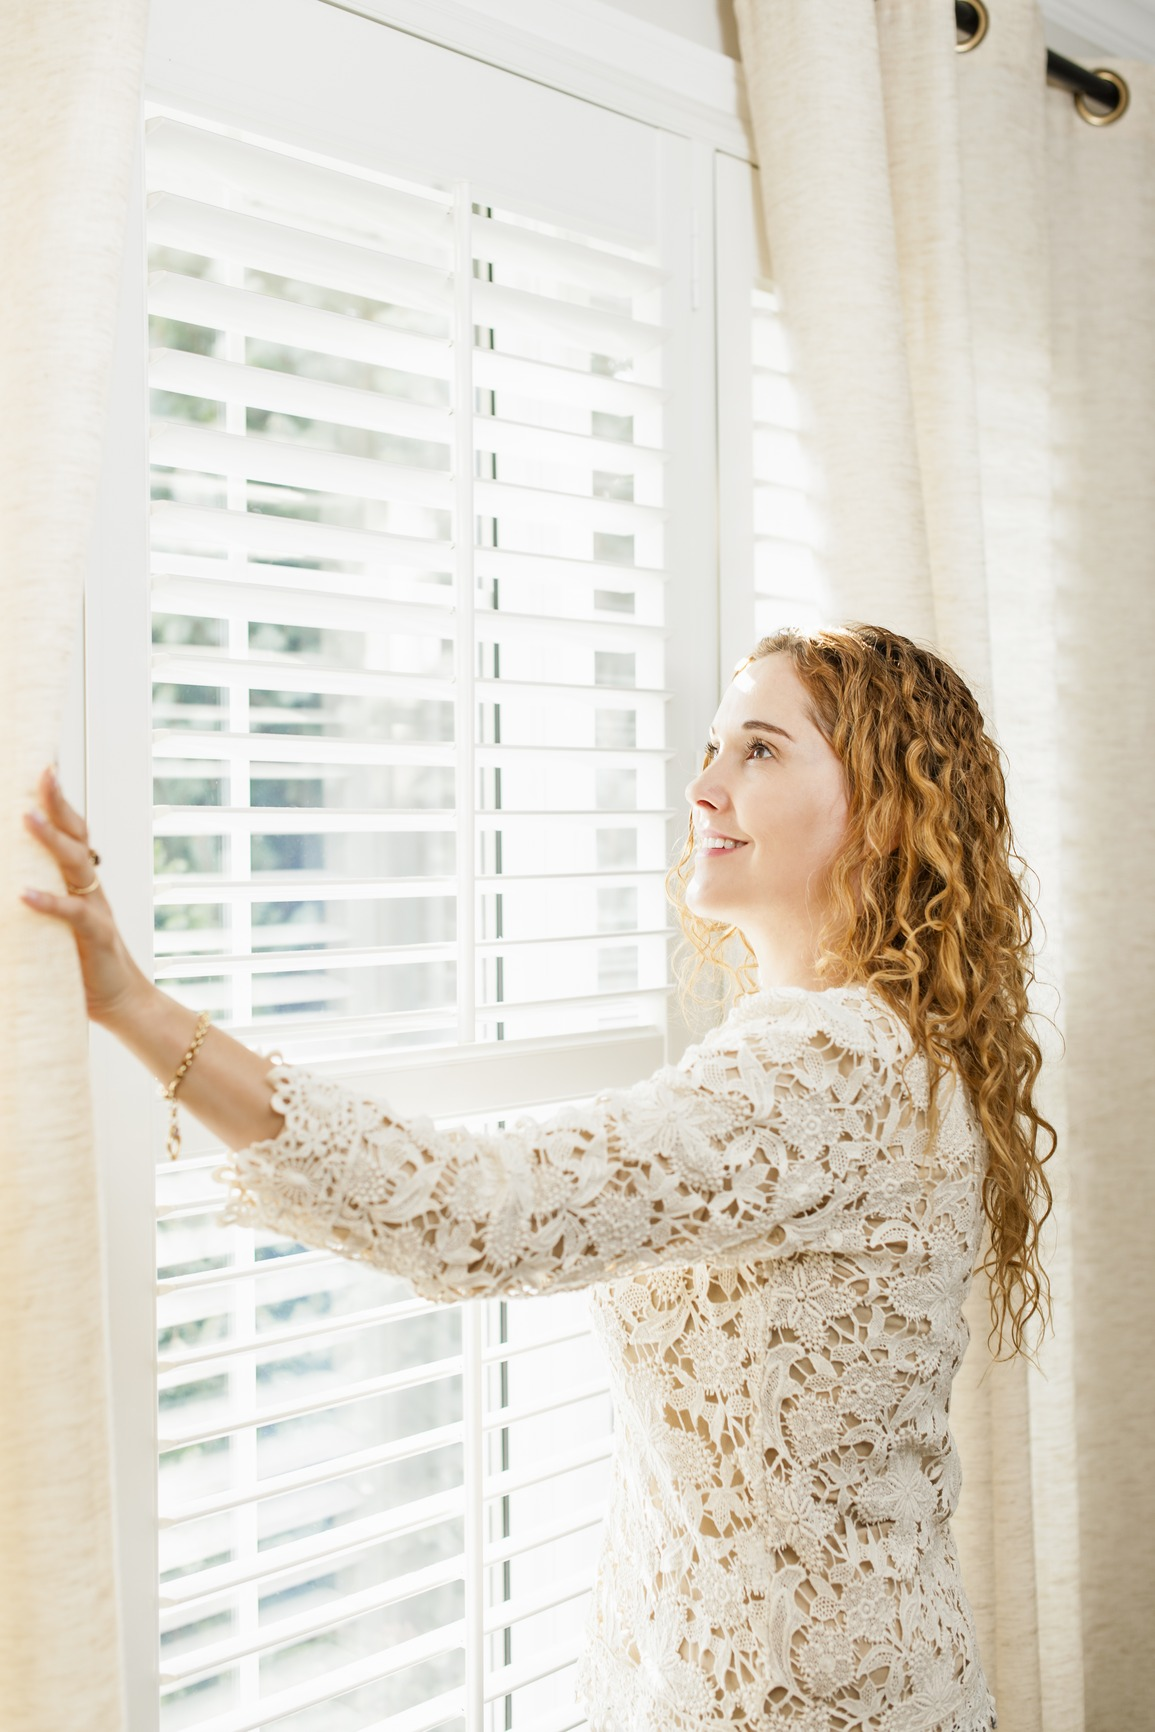 photodune-4259456-smiling-woman-looking-out-window-m